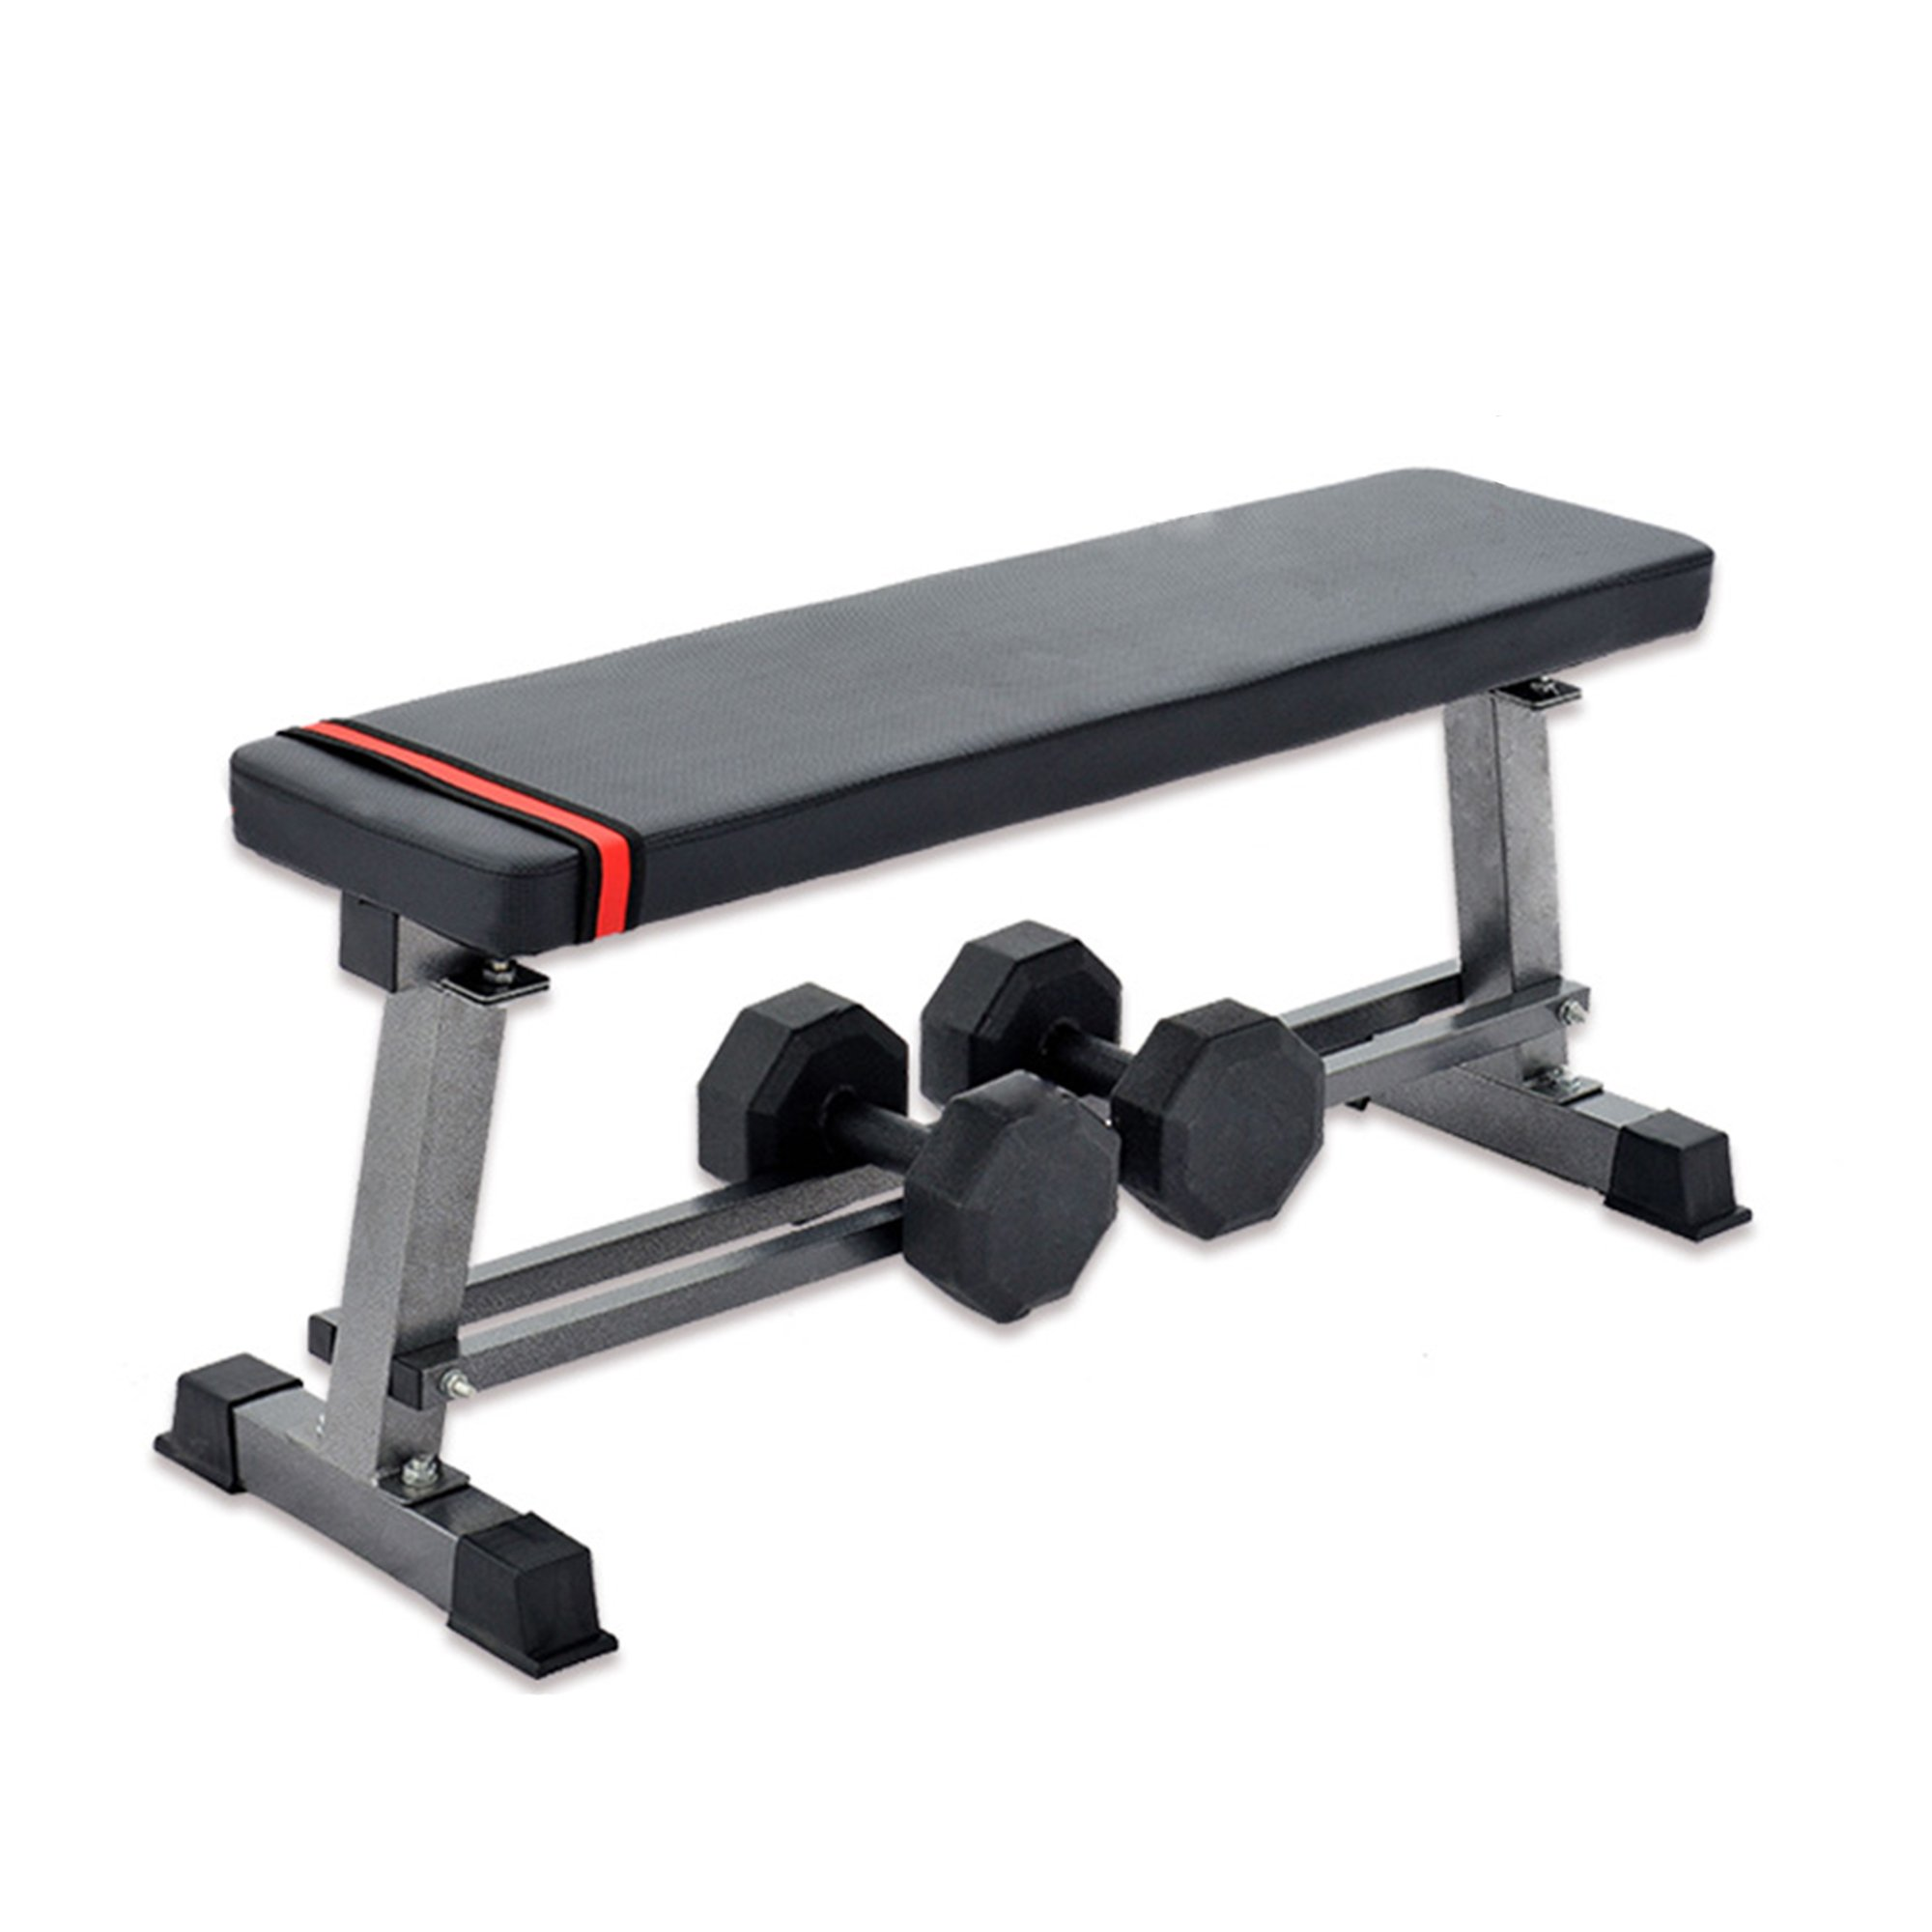 "Lucky Tree Flat Weight Bench with Bulit-in Barbell Storage Rack for Home Gym Fitness Training Ab Exercises Board Workout Benches, 660lbs Capacity,40.5""Lx14.5""Wx18""H"